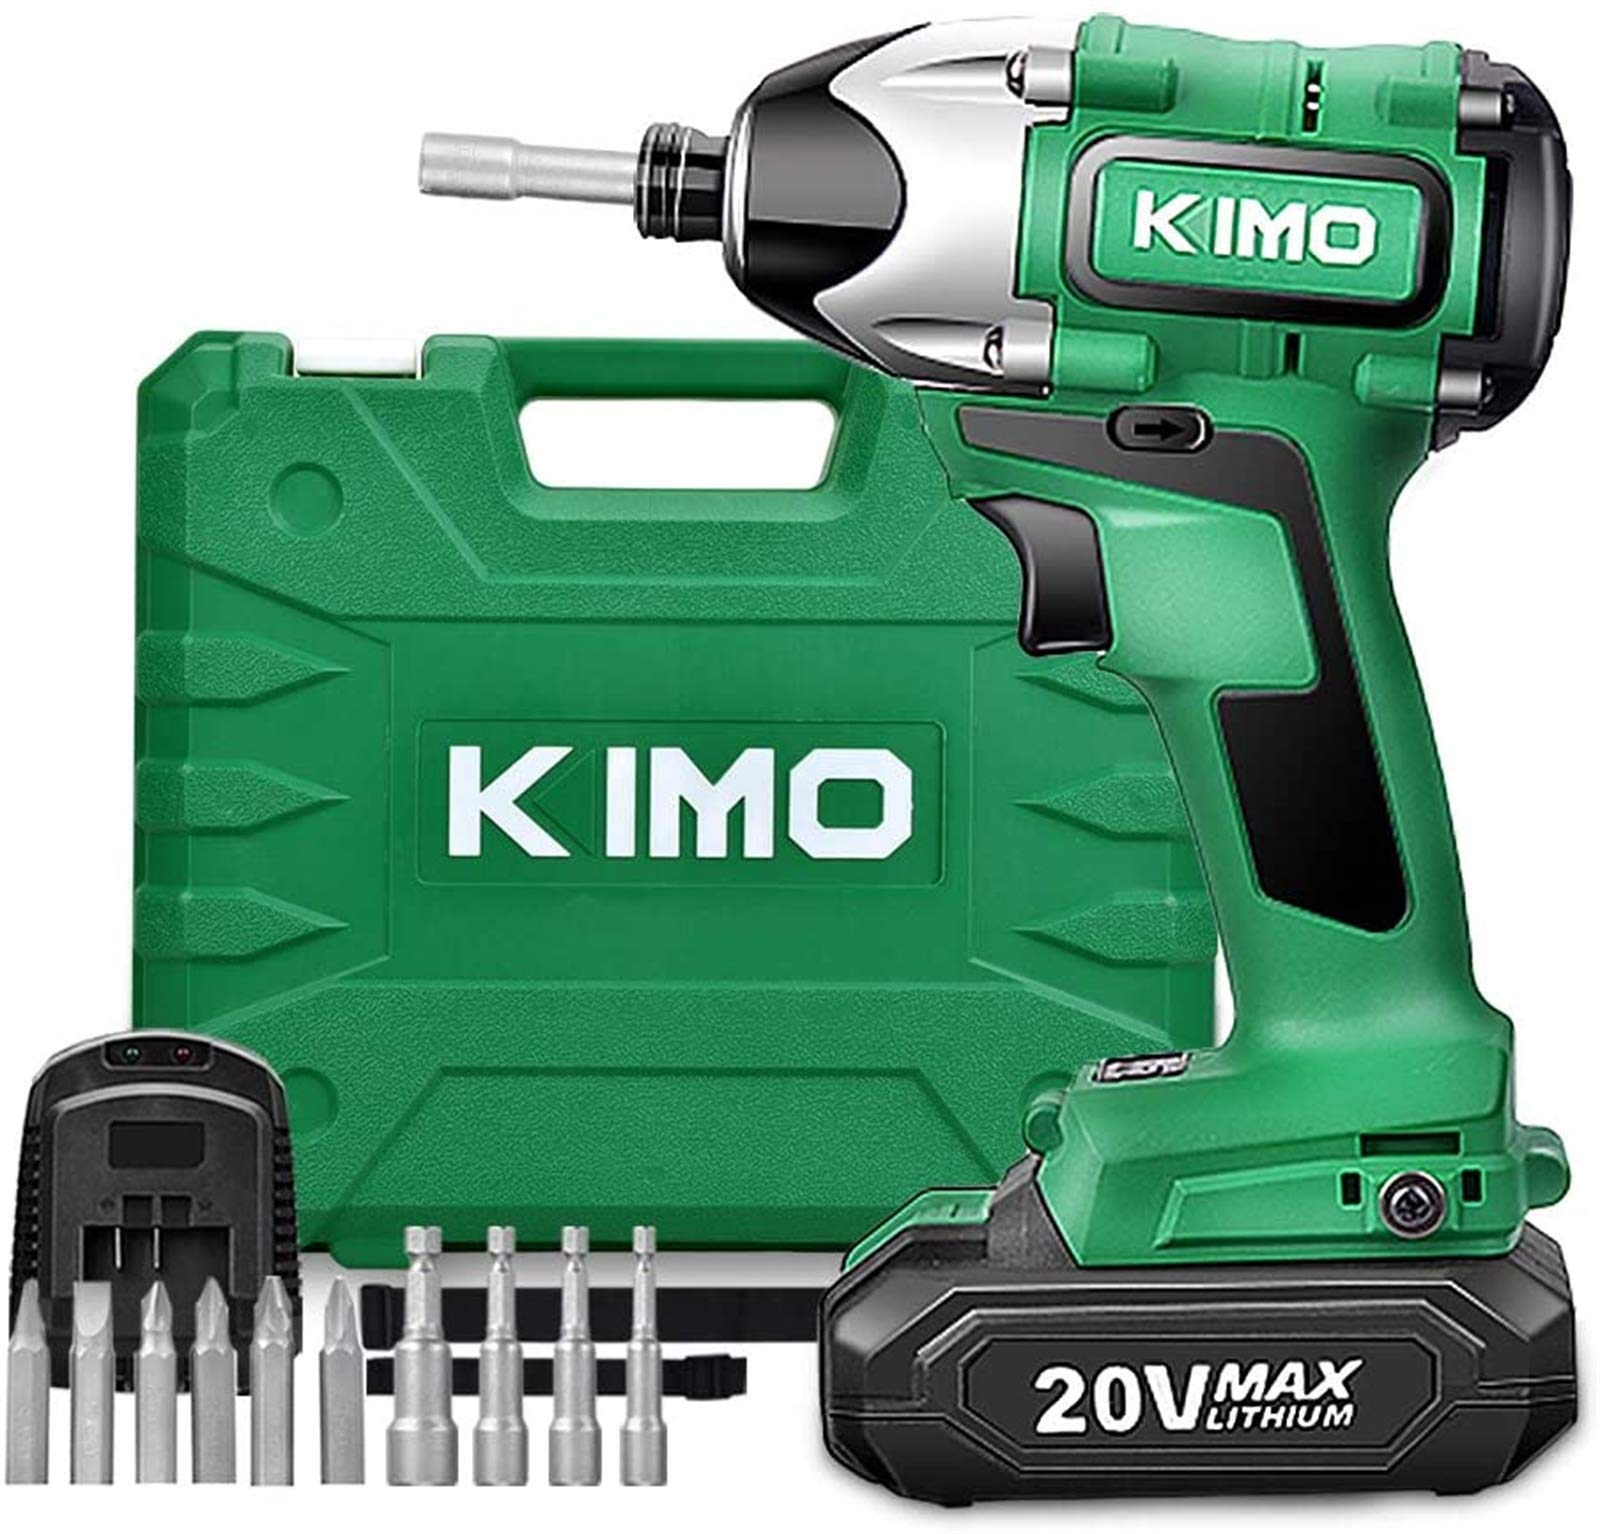 Impact Driver - 20V 2.0Ah Battery Brushless Cordless Impact Drill Kit w/ 2652in-lb 300NM Torque, 2800RPM Variable Speed, 6pc Driver Bits, 4pc Socket Bits, Power Tool Case, Lithium-Ion